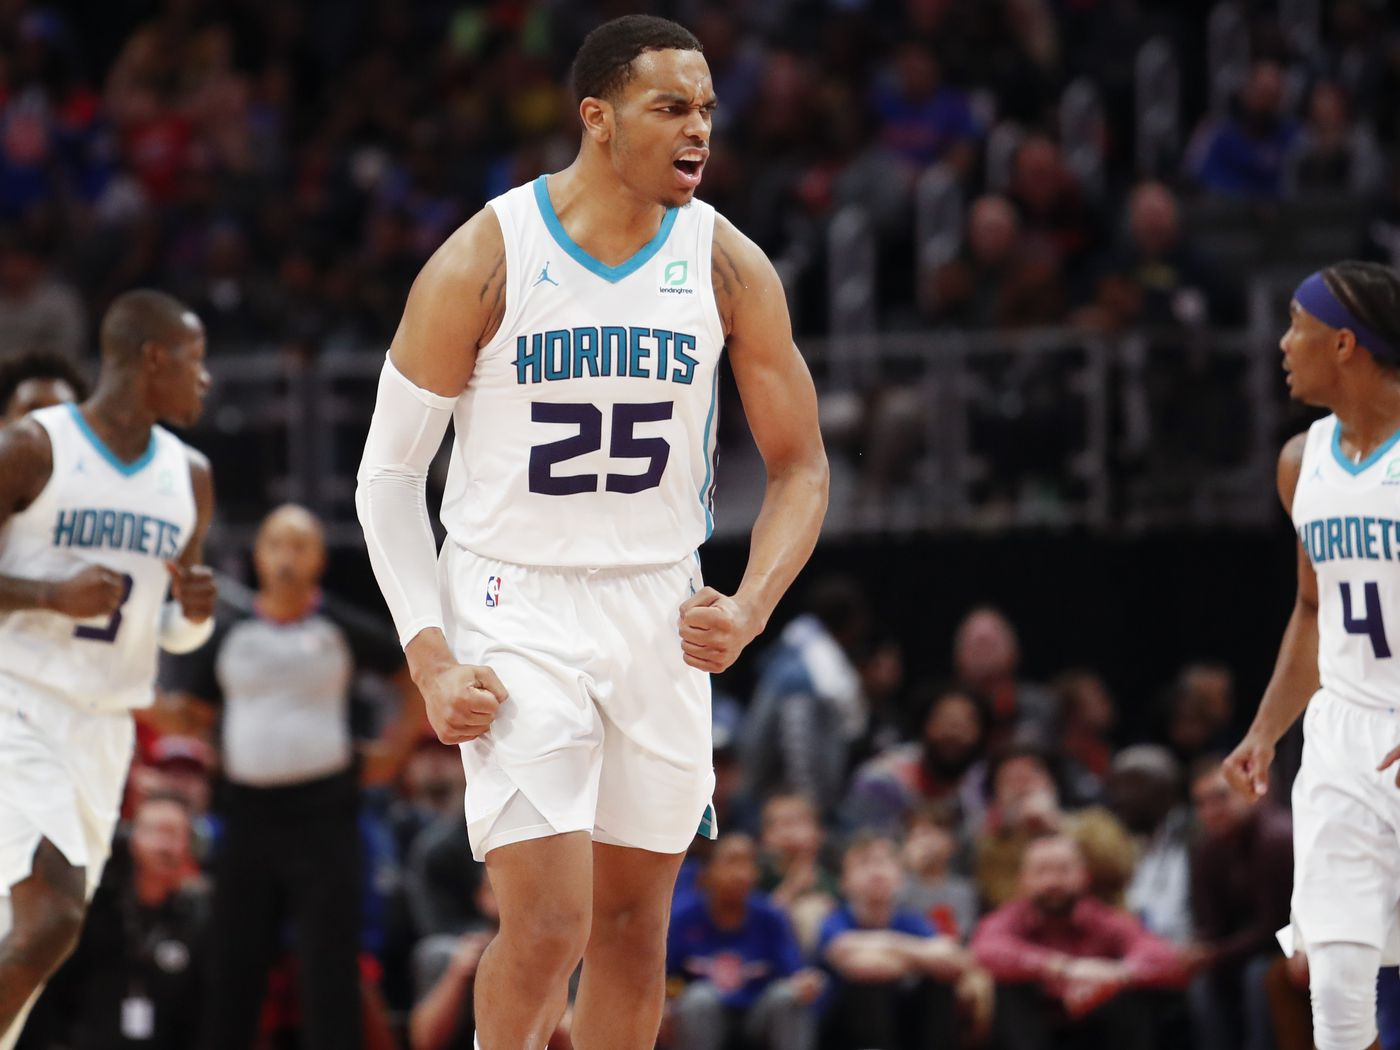 Charlotte Hornets Vs Toronto Raptors Preseason Game Thread At The Hive